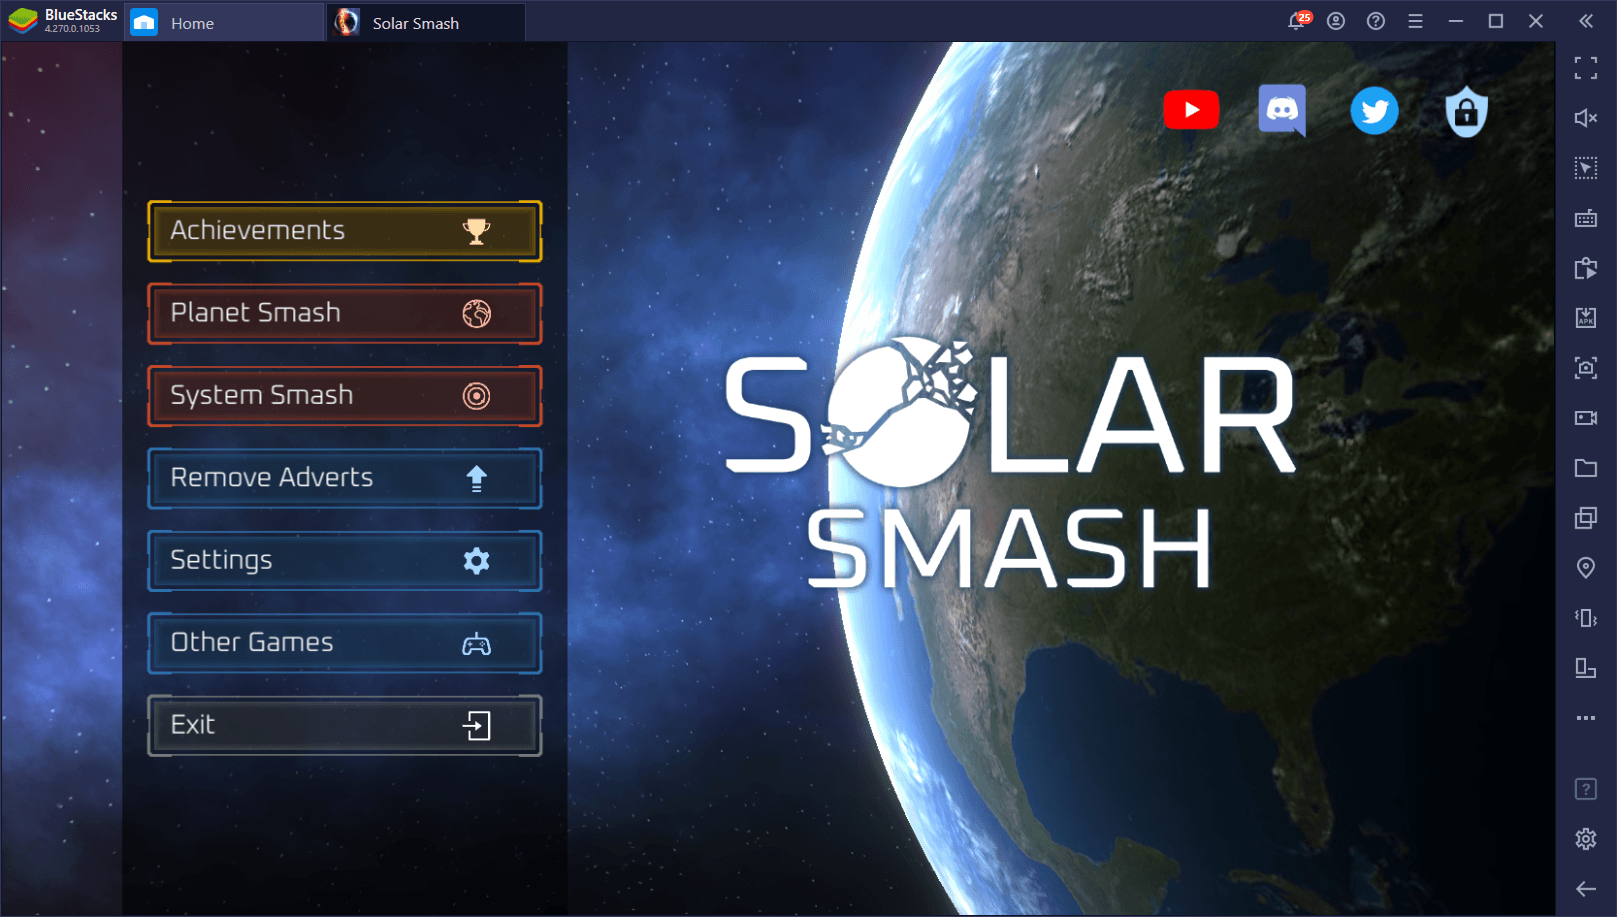 Solar Smash – How to Enjoy this Destruction Simulation Game on PC with BlueStacks